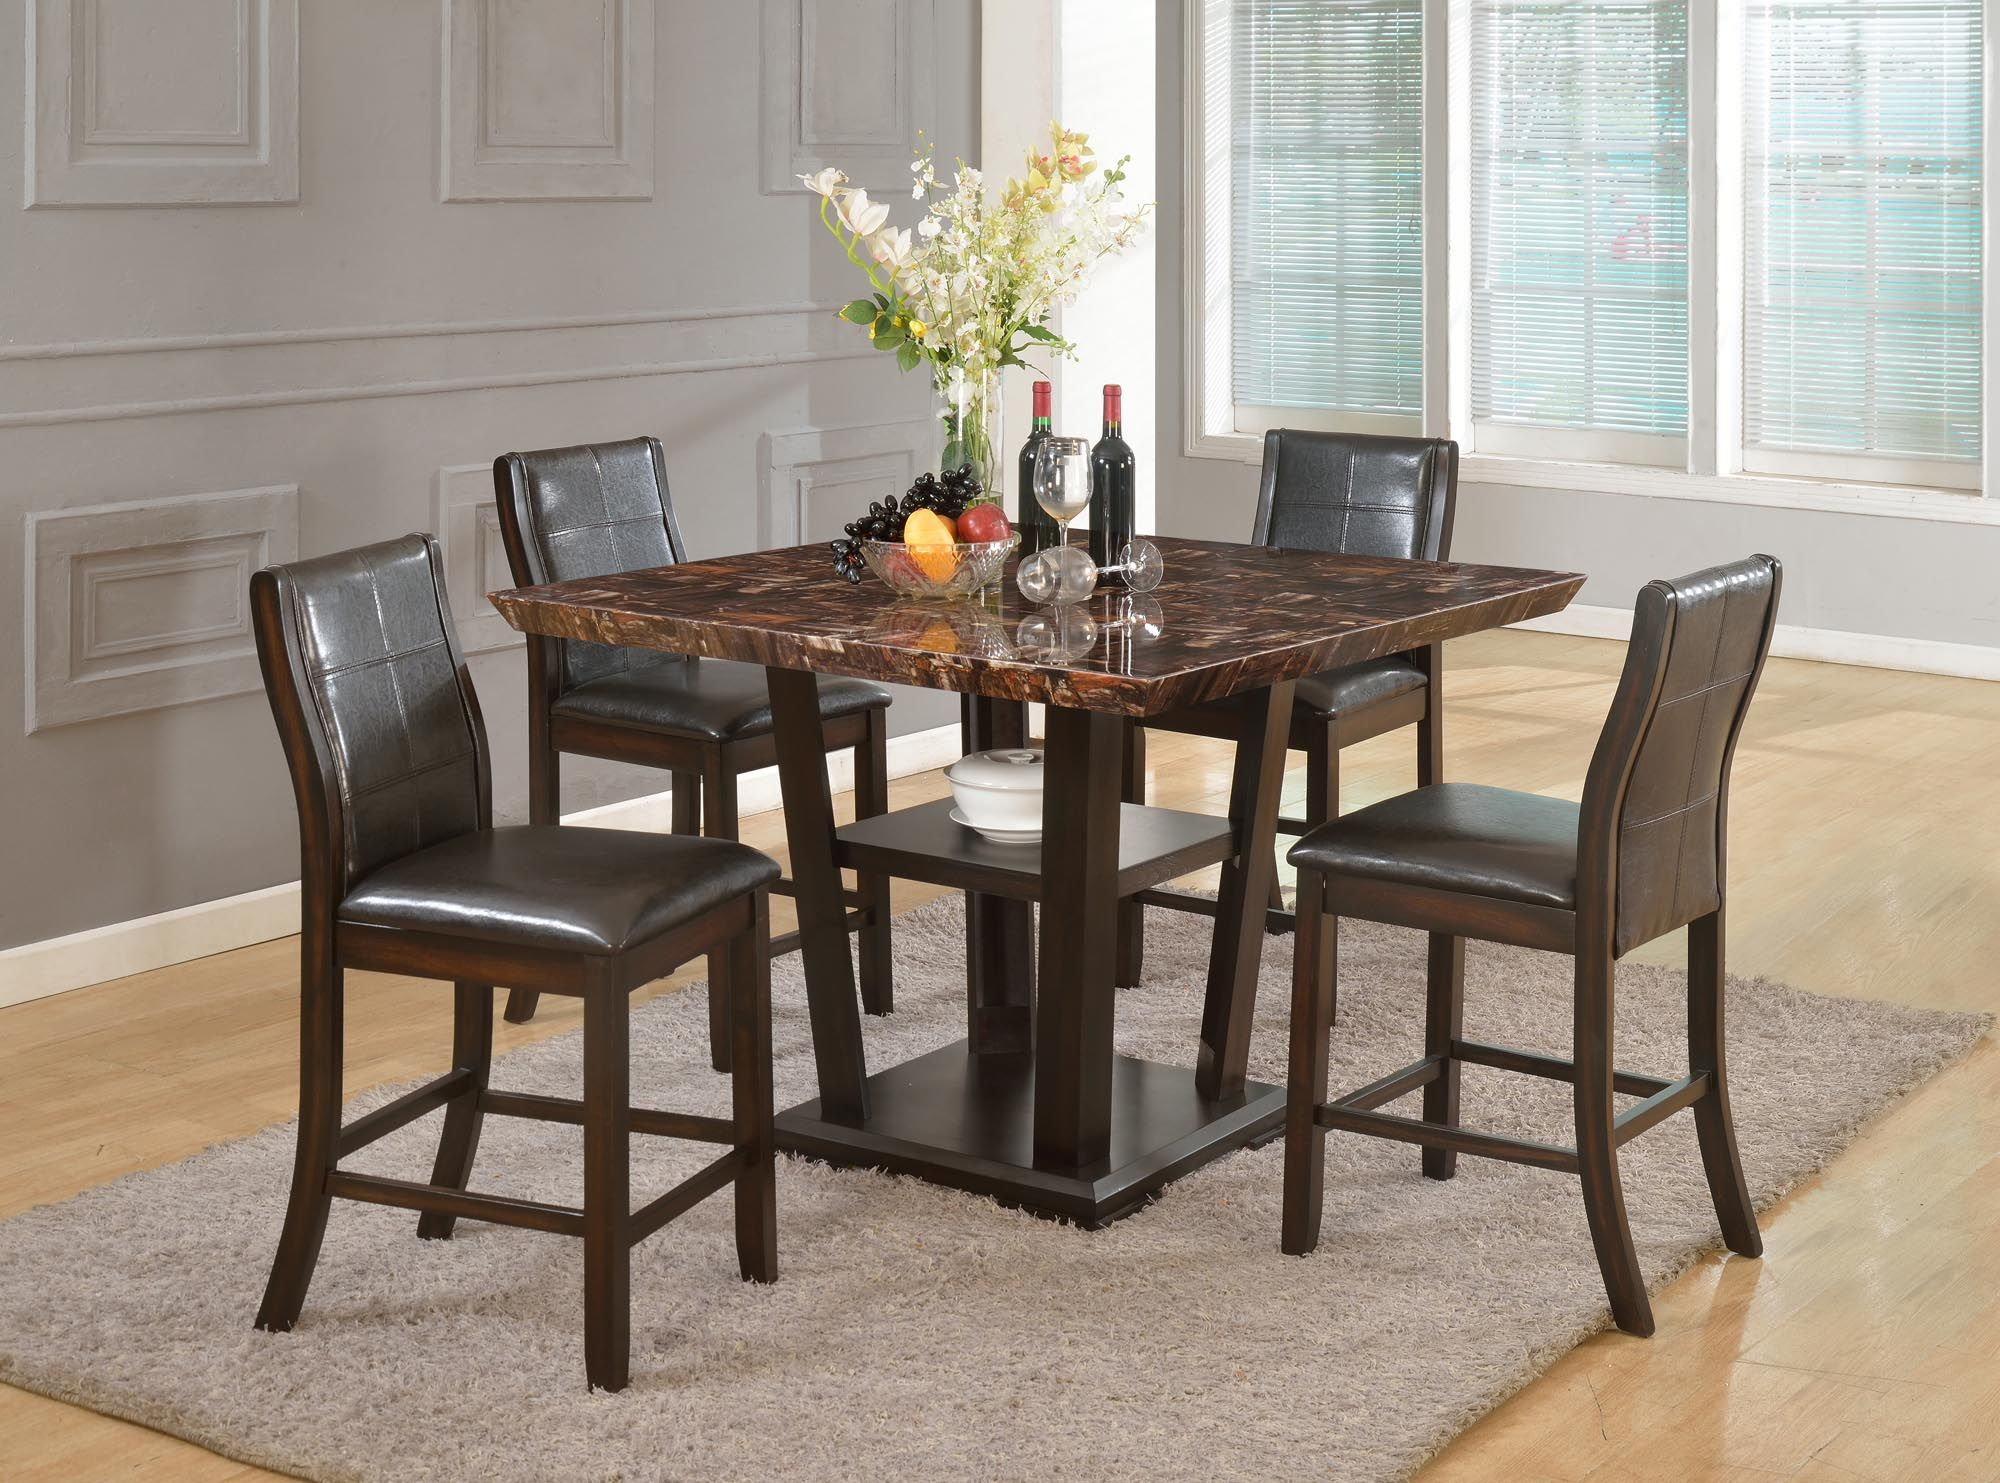 5 Piece Counter Height Table And 4 Chairs Faux Marble Top In